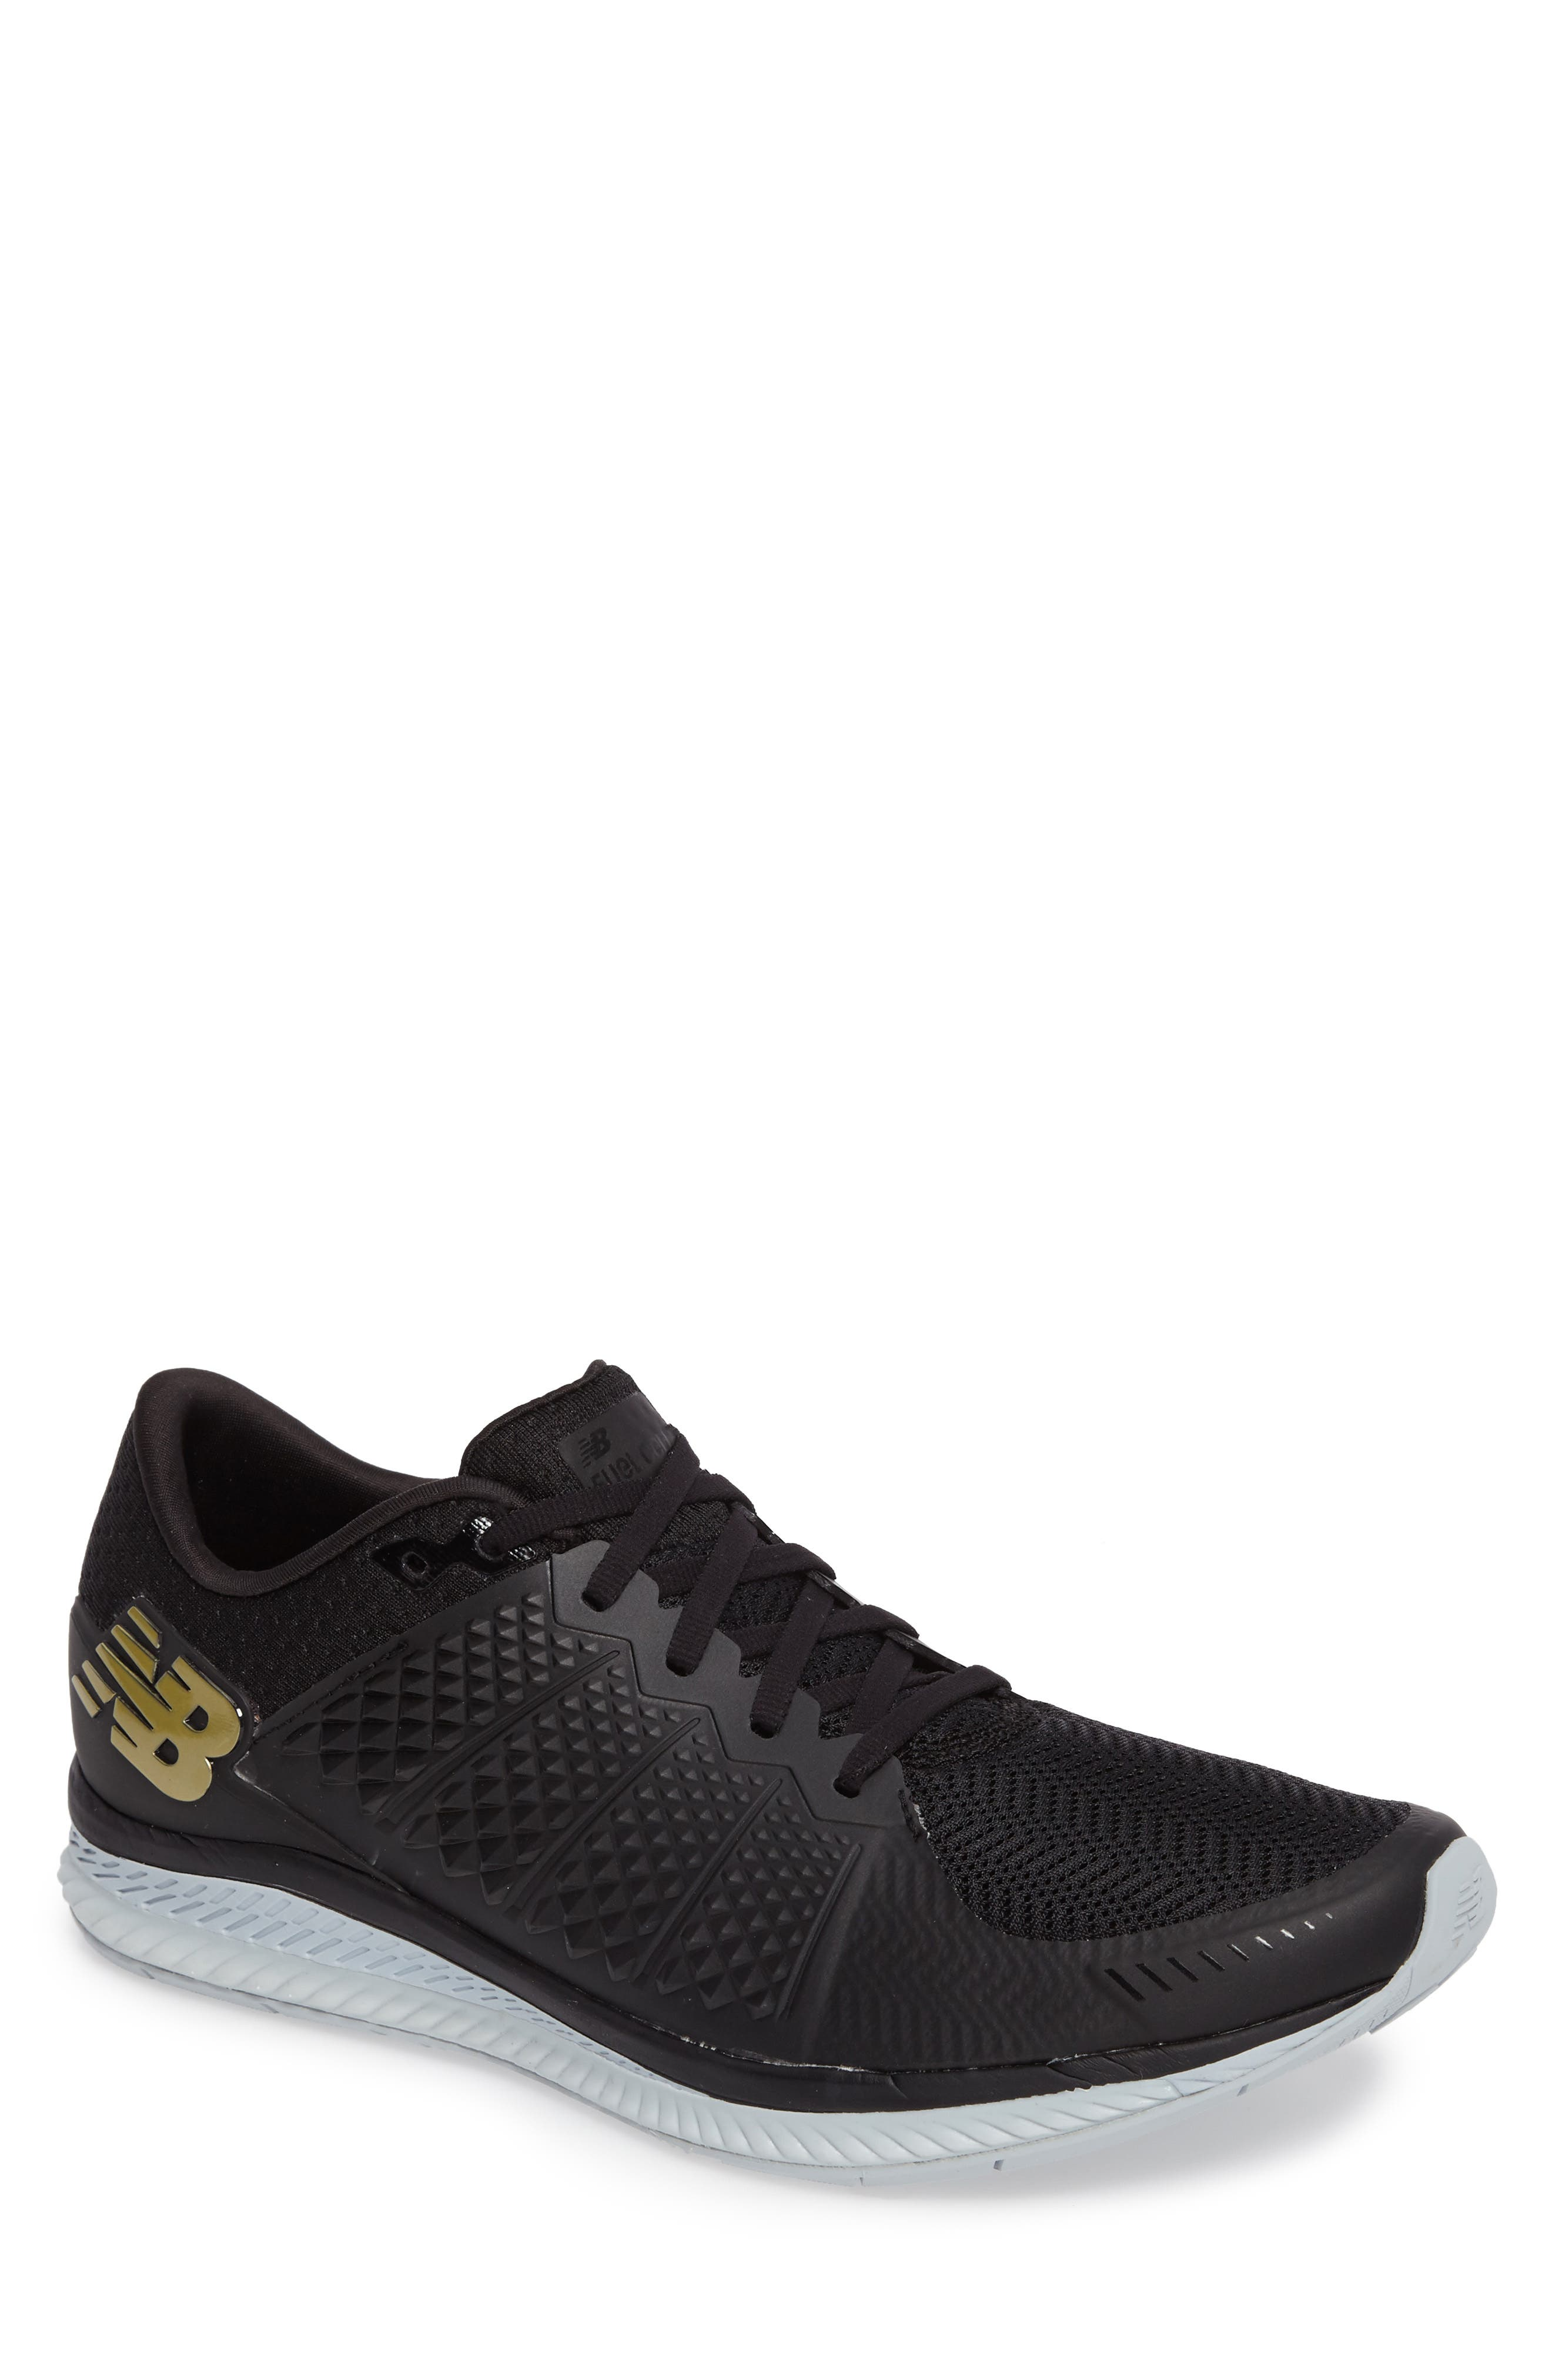 Vazee Fuel Cell Running Shoe,                         Main,                         color, 001